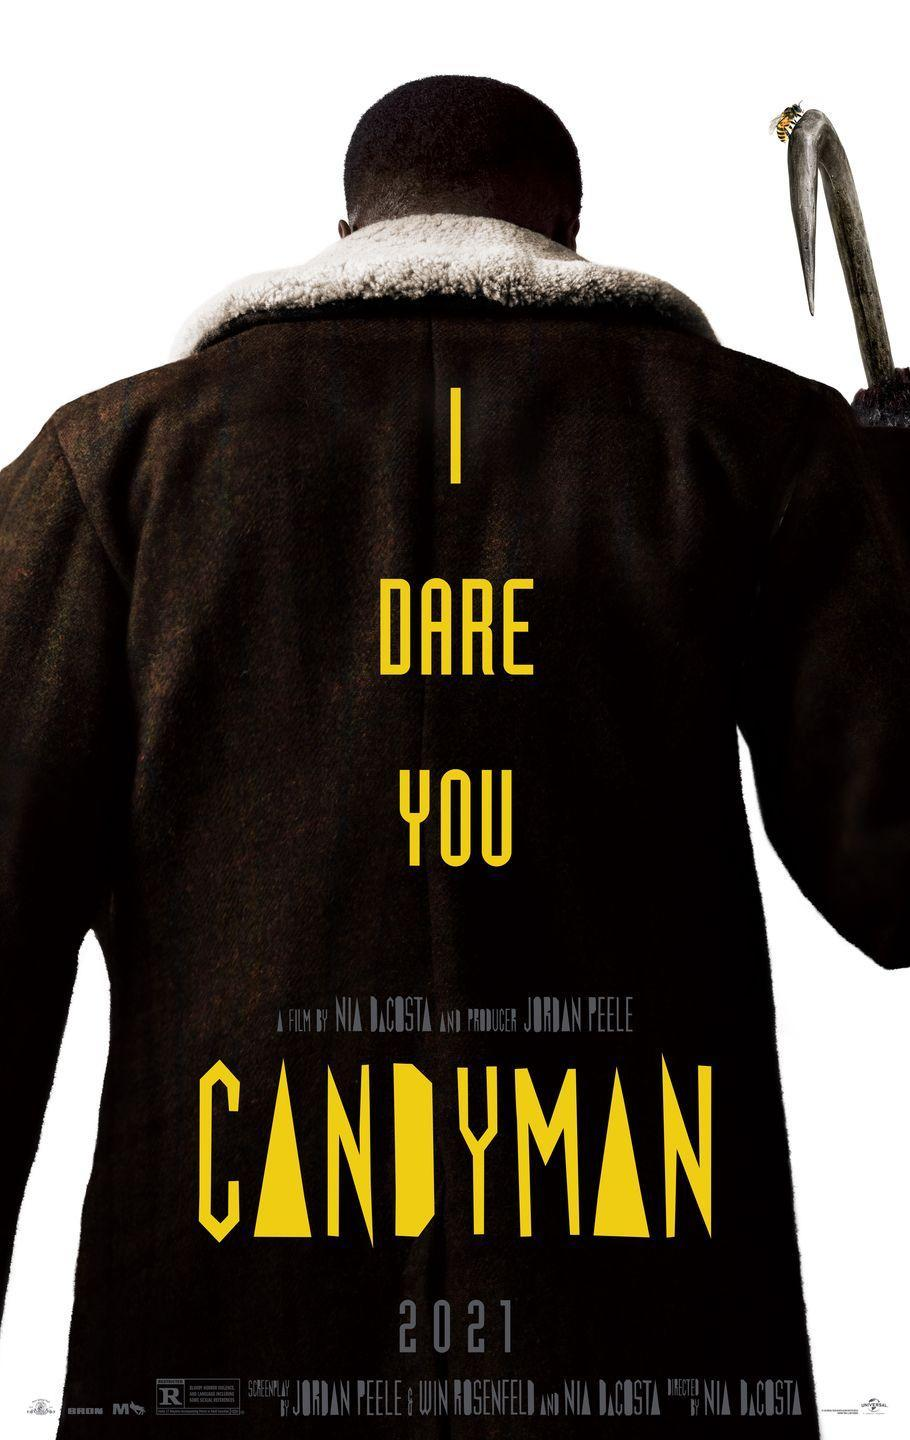 """<p>No matter how many times you said his name (kidding, please don't do that), the long-awaited <em>Candyman</em> sequel did not show up in 2020. But this Jordan Peele-produced, Nia DaCosta-directed follow-up to <a href=""""https://www.amazon.com/Candyman-Virginia-Madsen/dp/B008P3STH0/?tag=syn-yahoo-20&ascsubtag=%5Bartid%7C10051.g.35153138%5Bsrc%7Cyahoo-us"""" rel=""""nofollow noopener"""" target=""""_blank"""" data-ylk=""""slk:the 1992 horror classic"""" class=""""link rapid-noclick-resp"""">the 1992 horror classic</a> is finally coming in 2021. It stars Yahya Abdul-Mateen II as Anthony, the grown-up version of the baby who was kidnapped by the Candyman in the prior movie and rescued by Helen Lyle. Twenty-eights years later, Anthony has moved on—until a chance encounter unveils the horrific truth of his past.</p><p><strong>In theaters August 27.</strong></p>"""